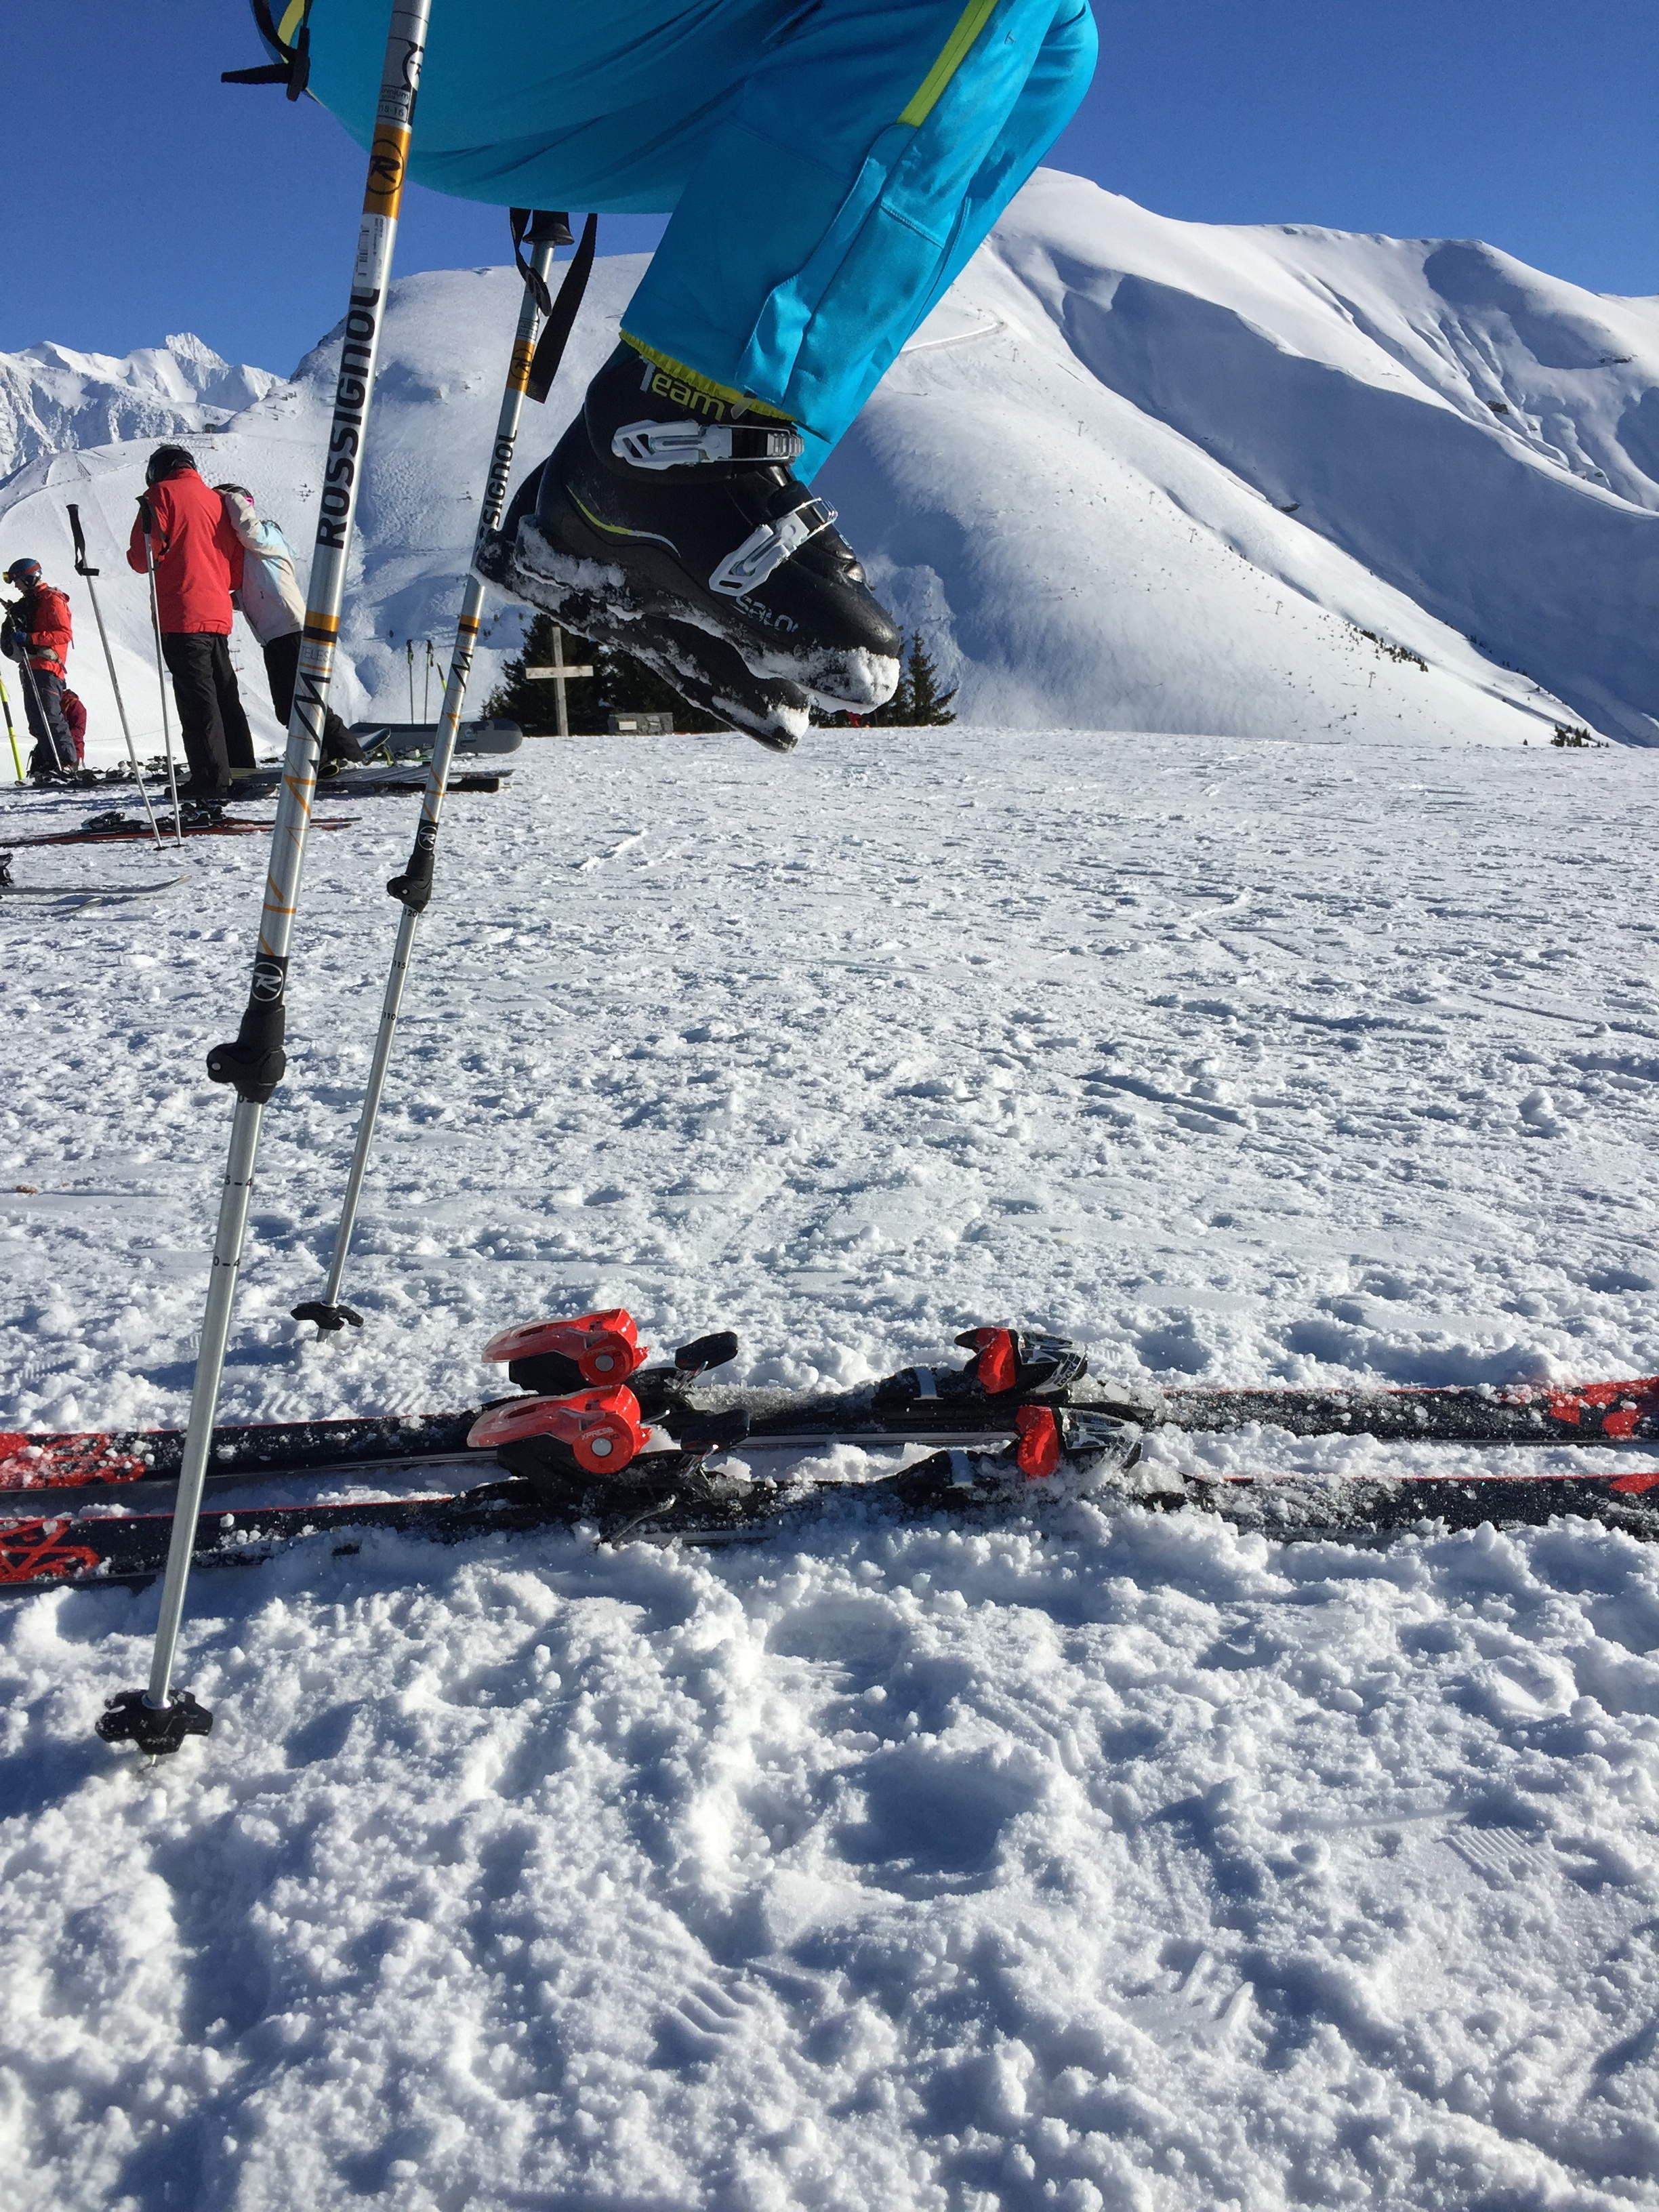 Cours collectifs ski 8 pers max/Group ski lesson 6/12 ans/11h00-13h00